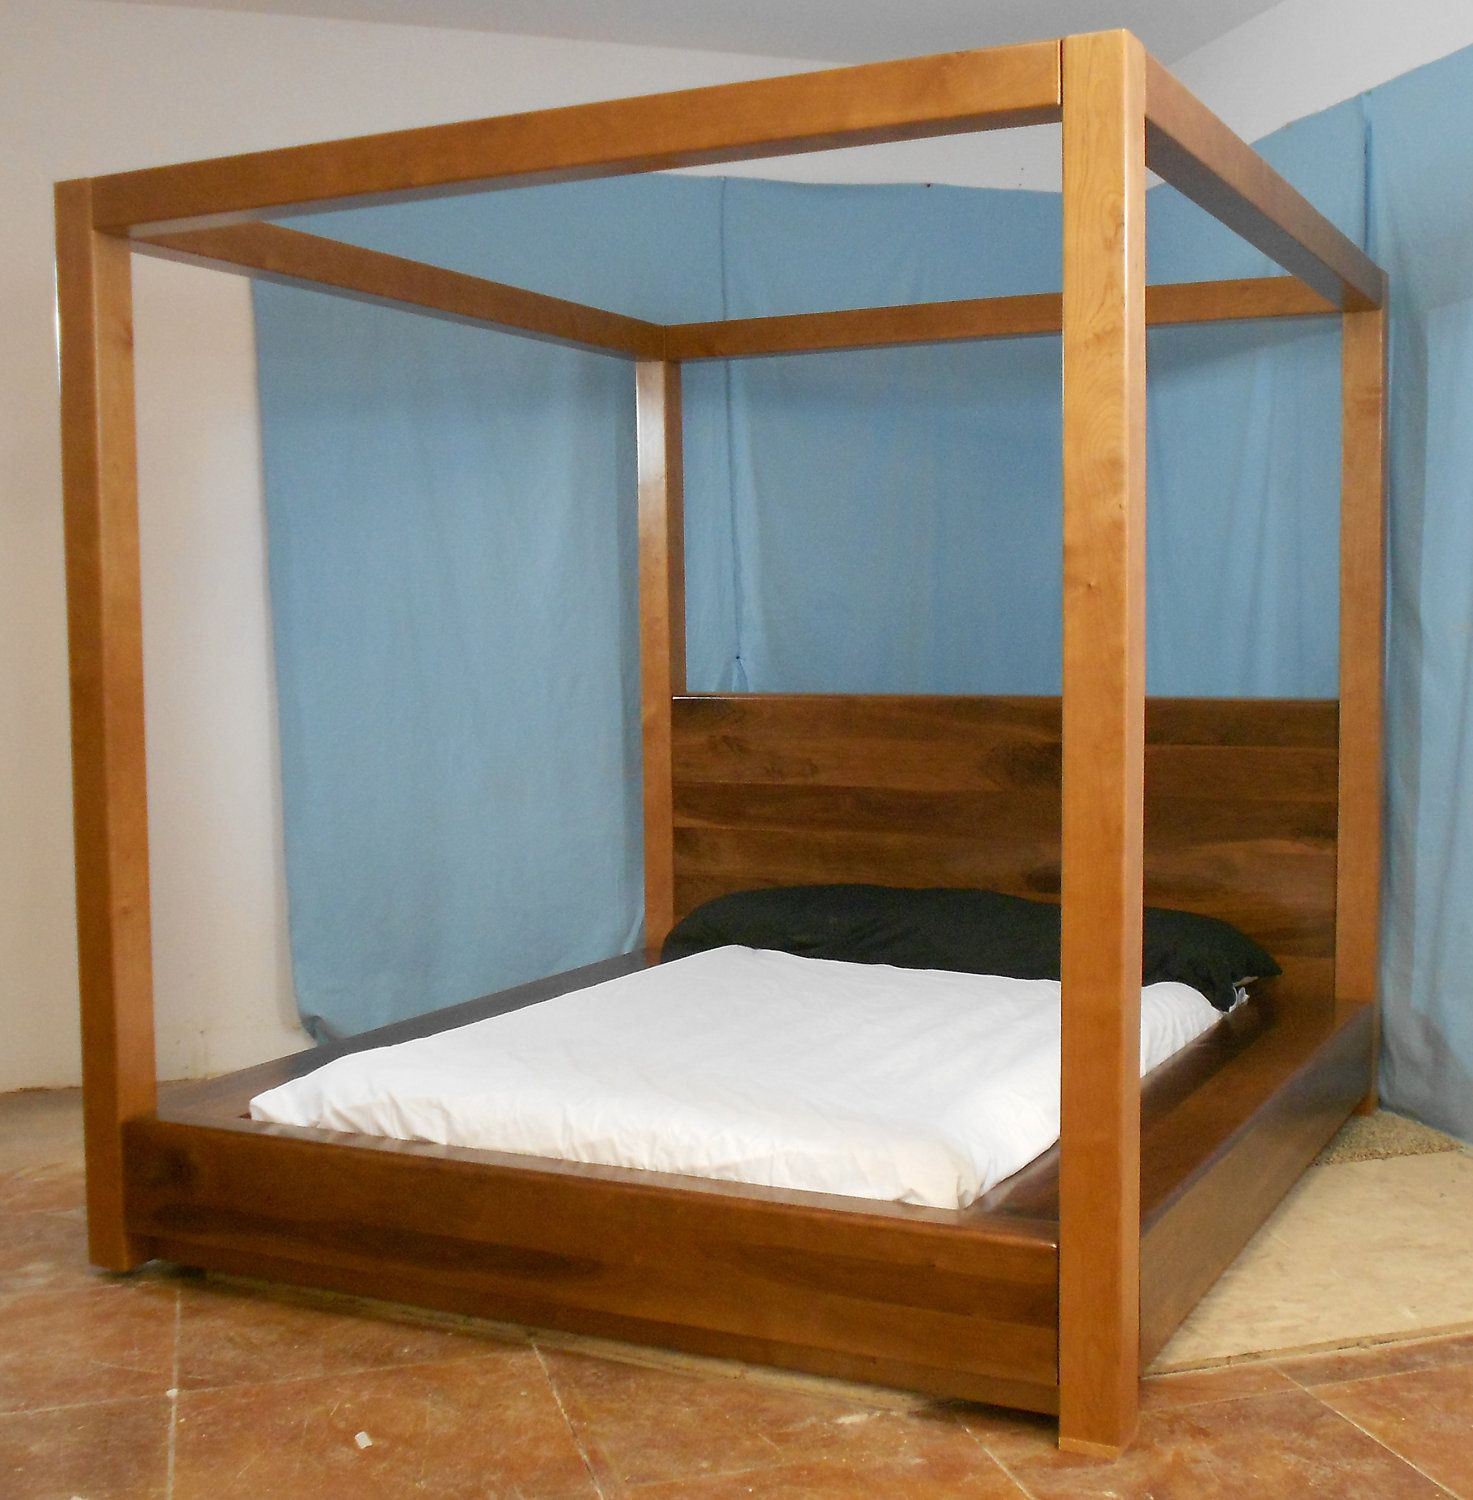 1,745.00 Danish, modern canopy bed Wood canopy bed